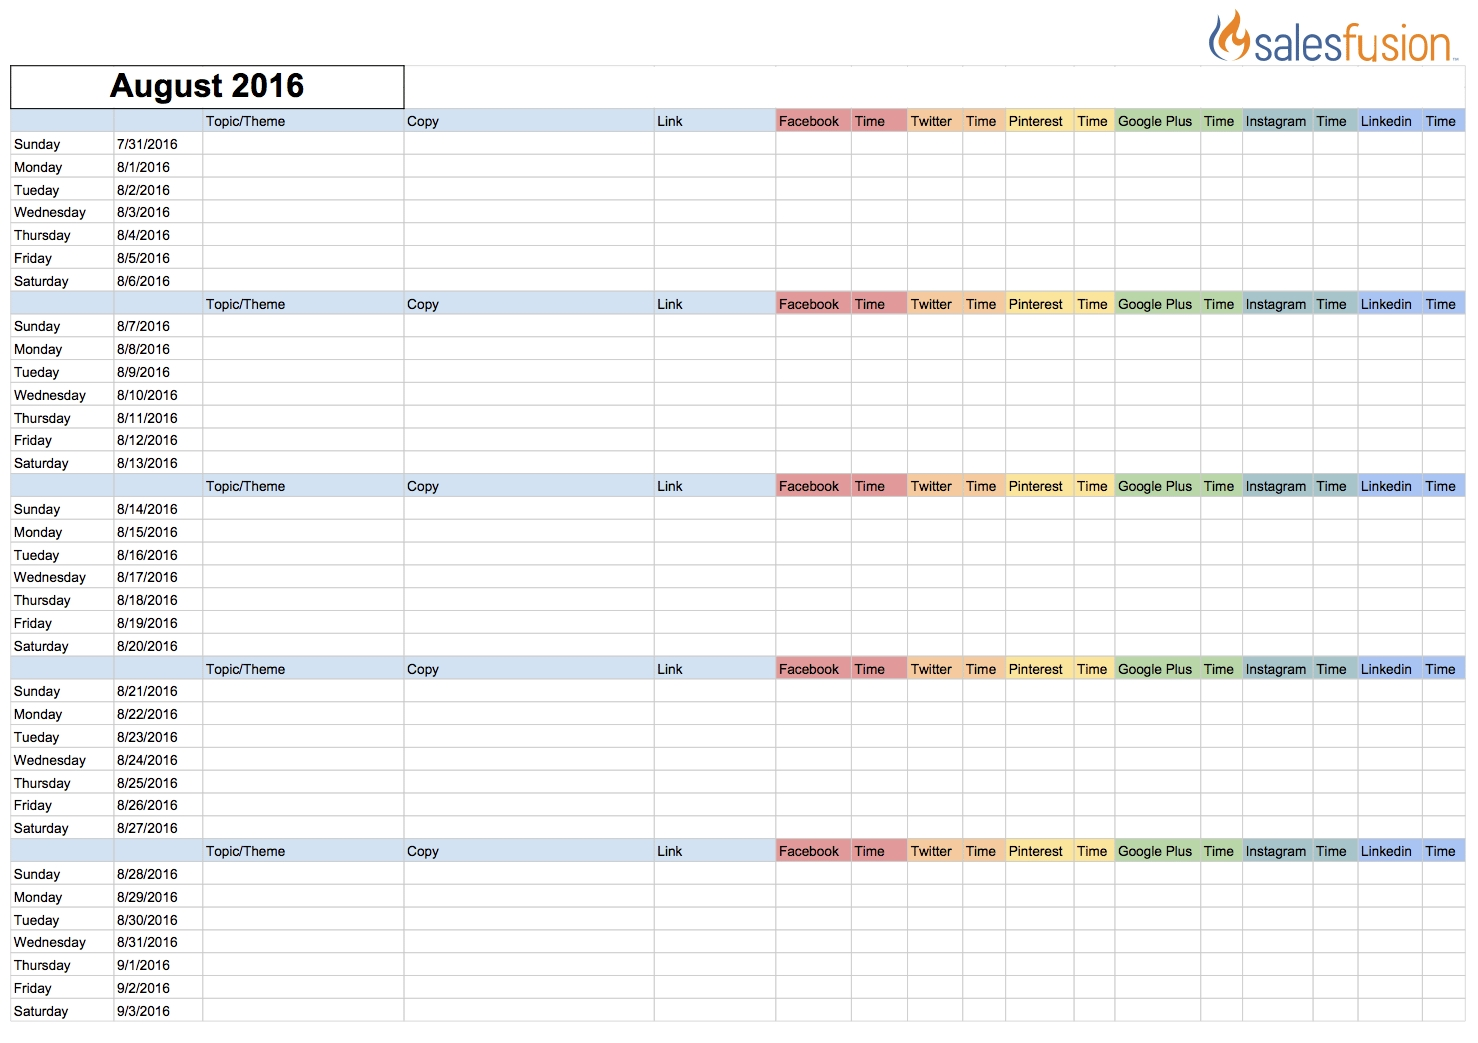 Social Media Content Calendar Template | Salesfusion pertaining to Social Media Posting Calendar Template